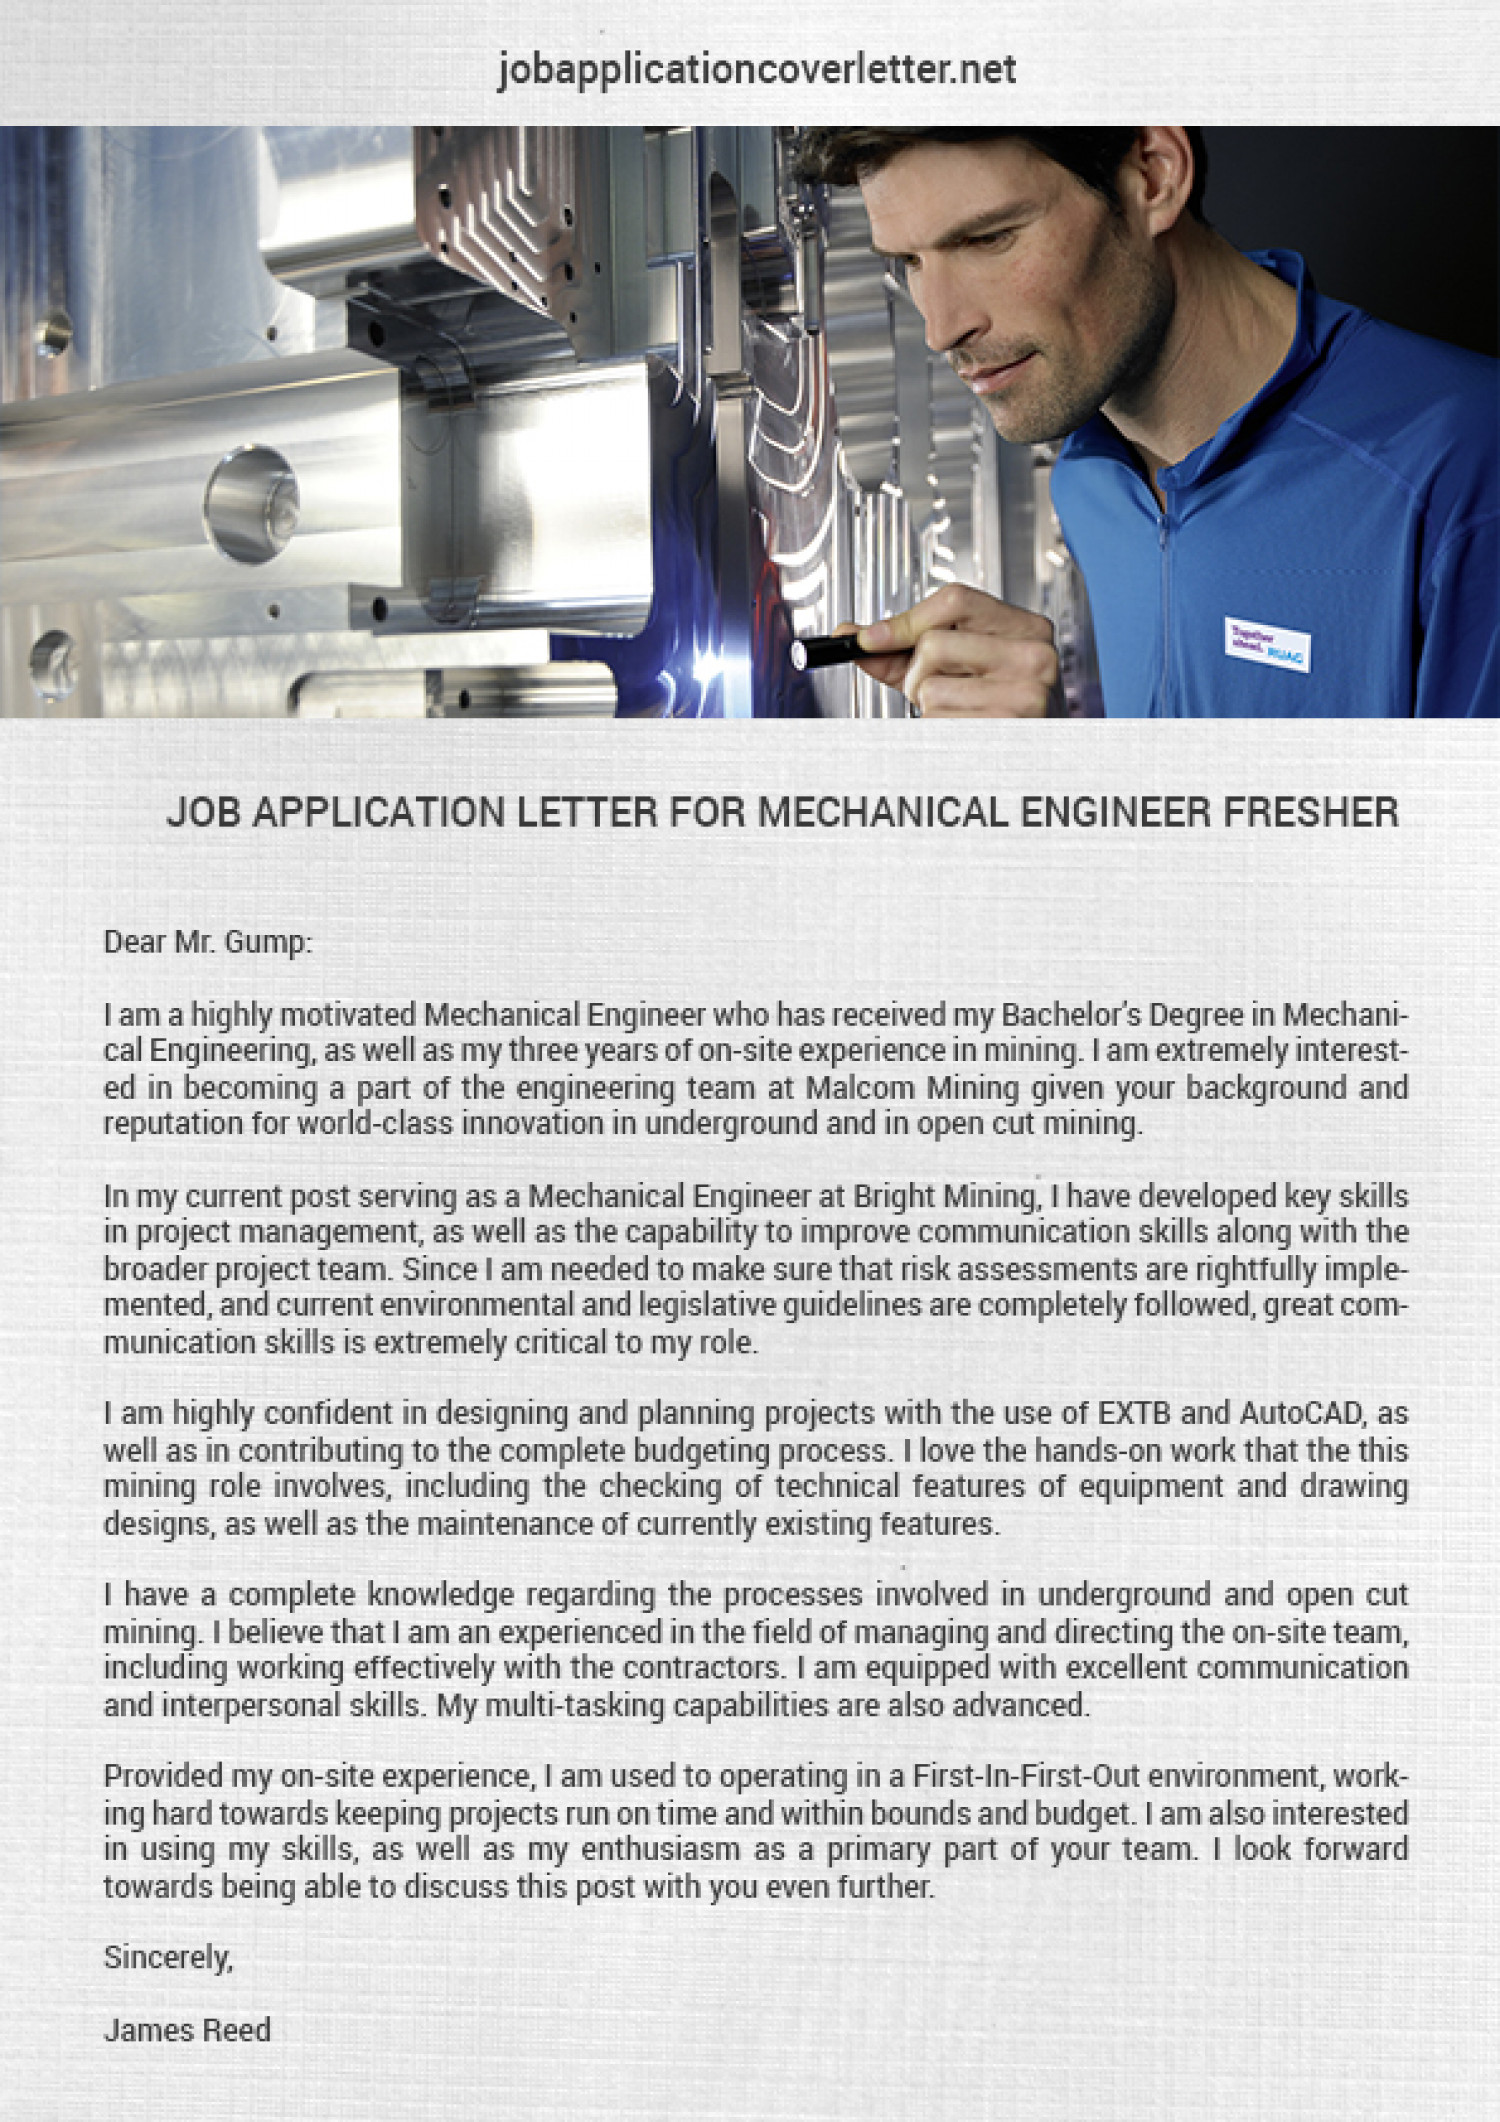 Job Application Letter Sample For Mechanical Engineer Fresher